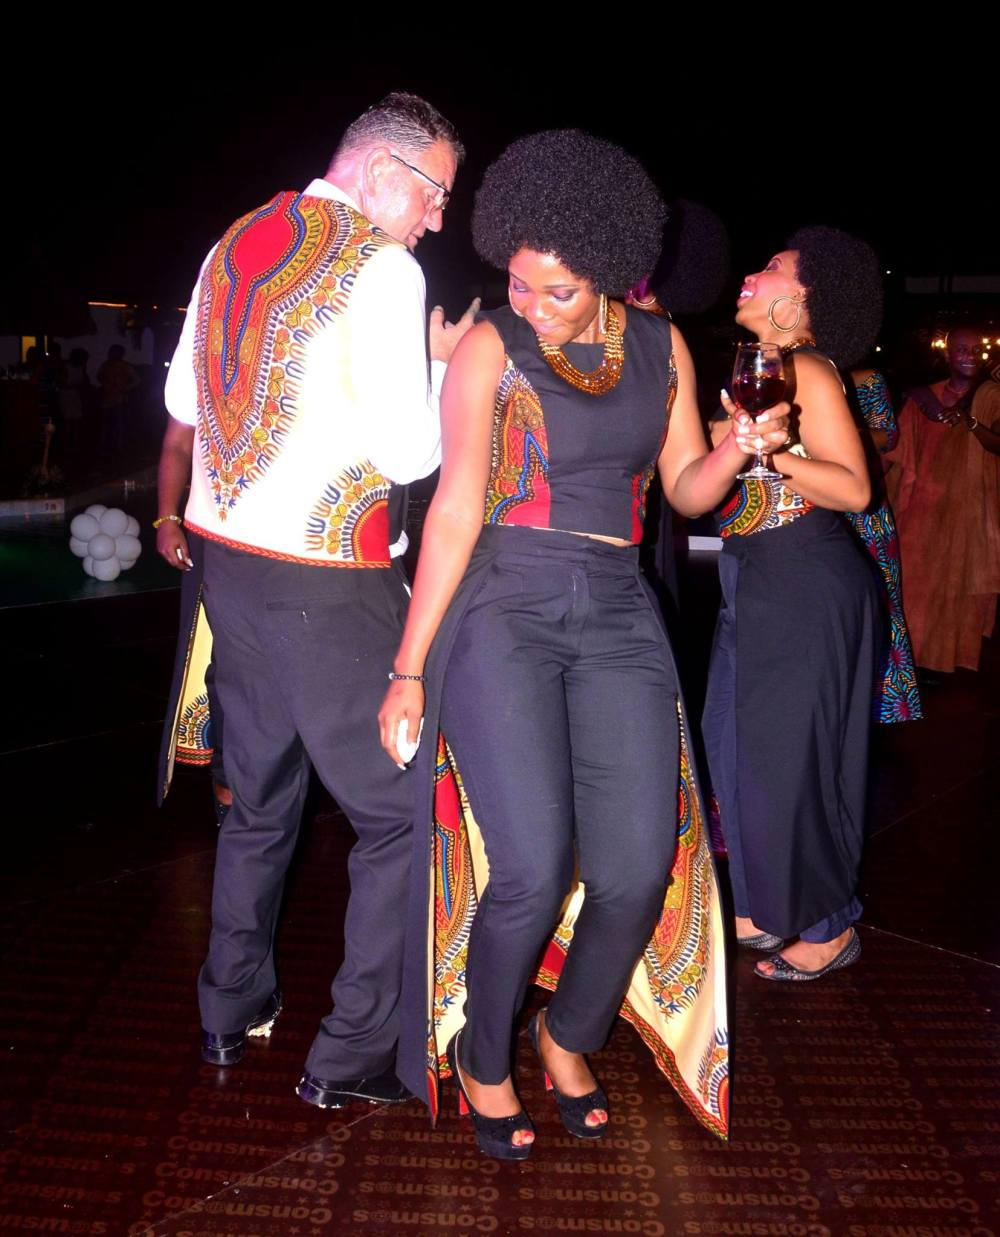 Just letting loose on the dance floor in Accra Ghana